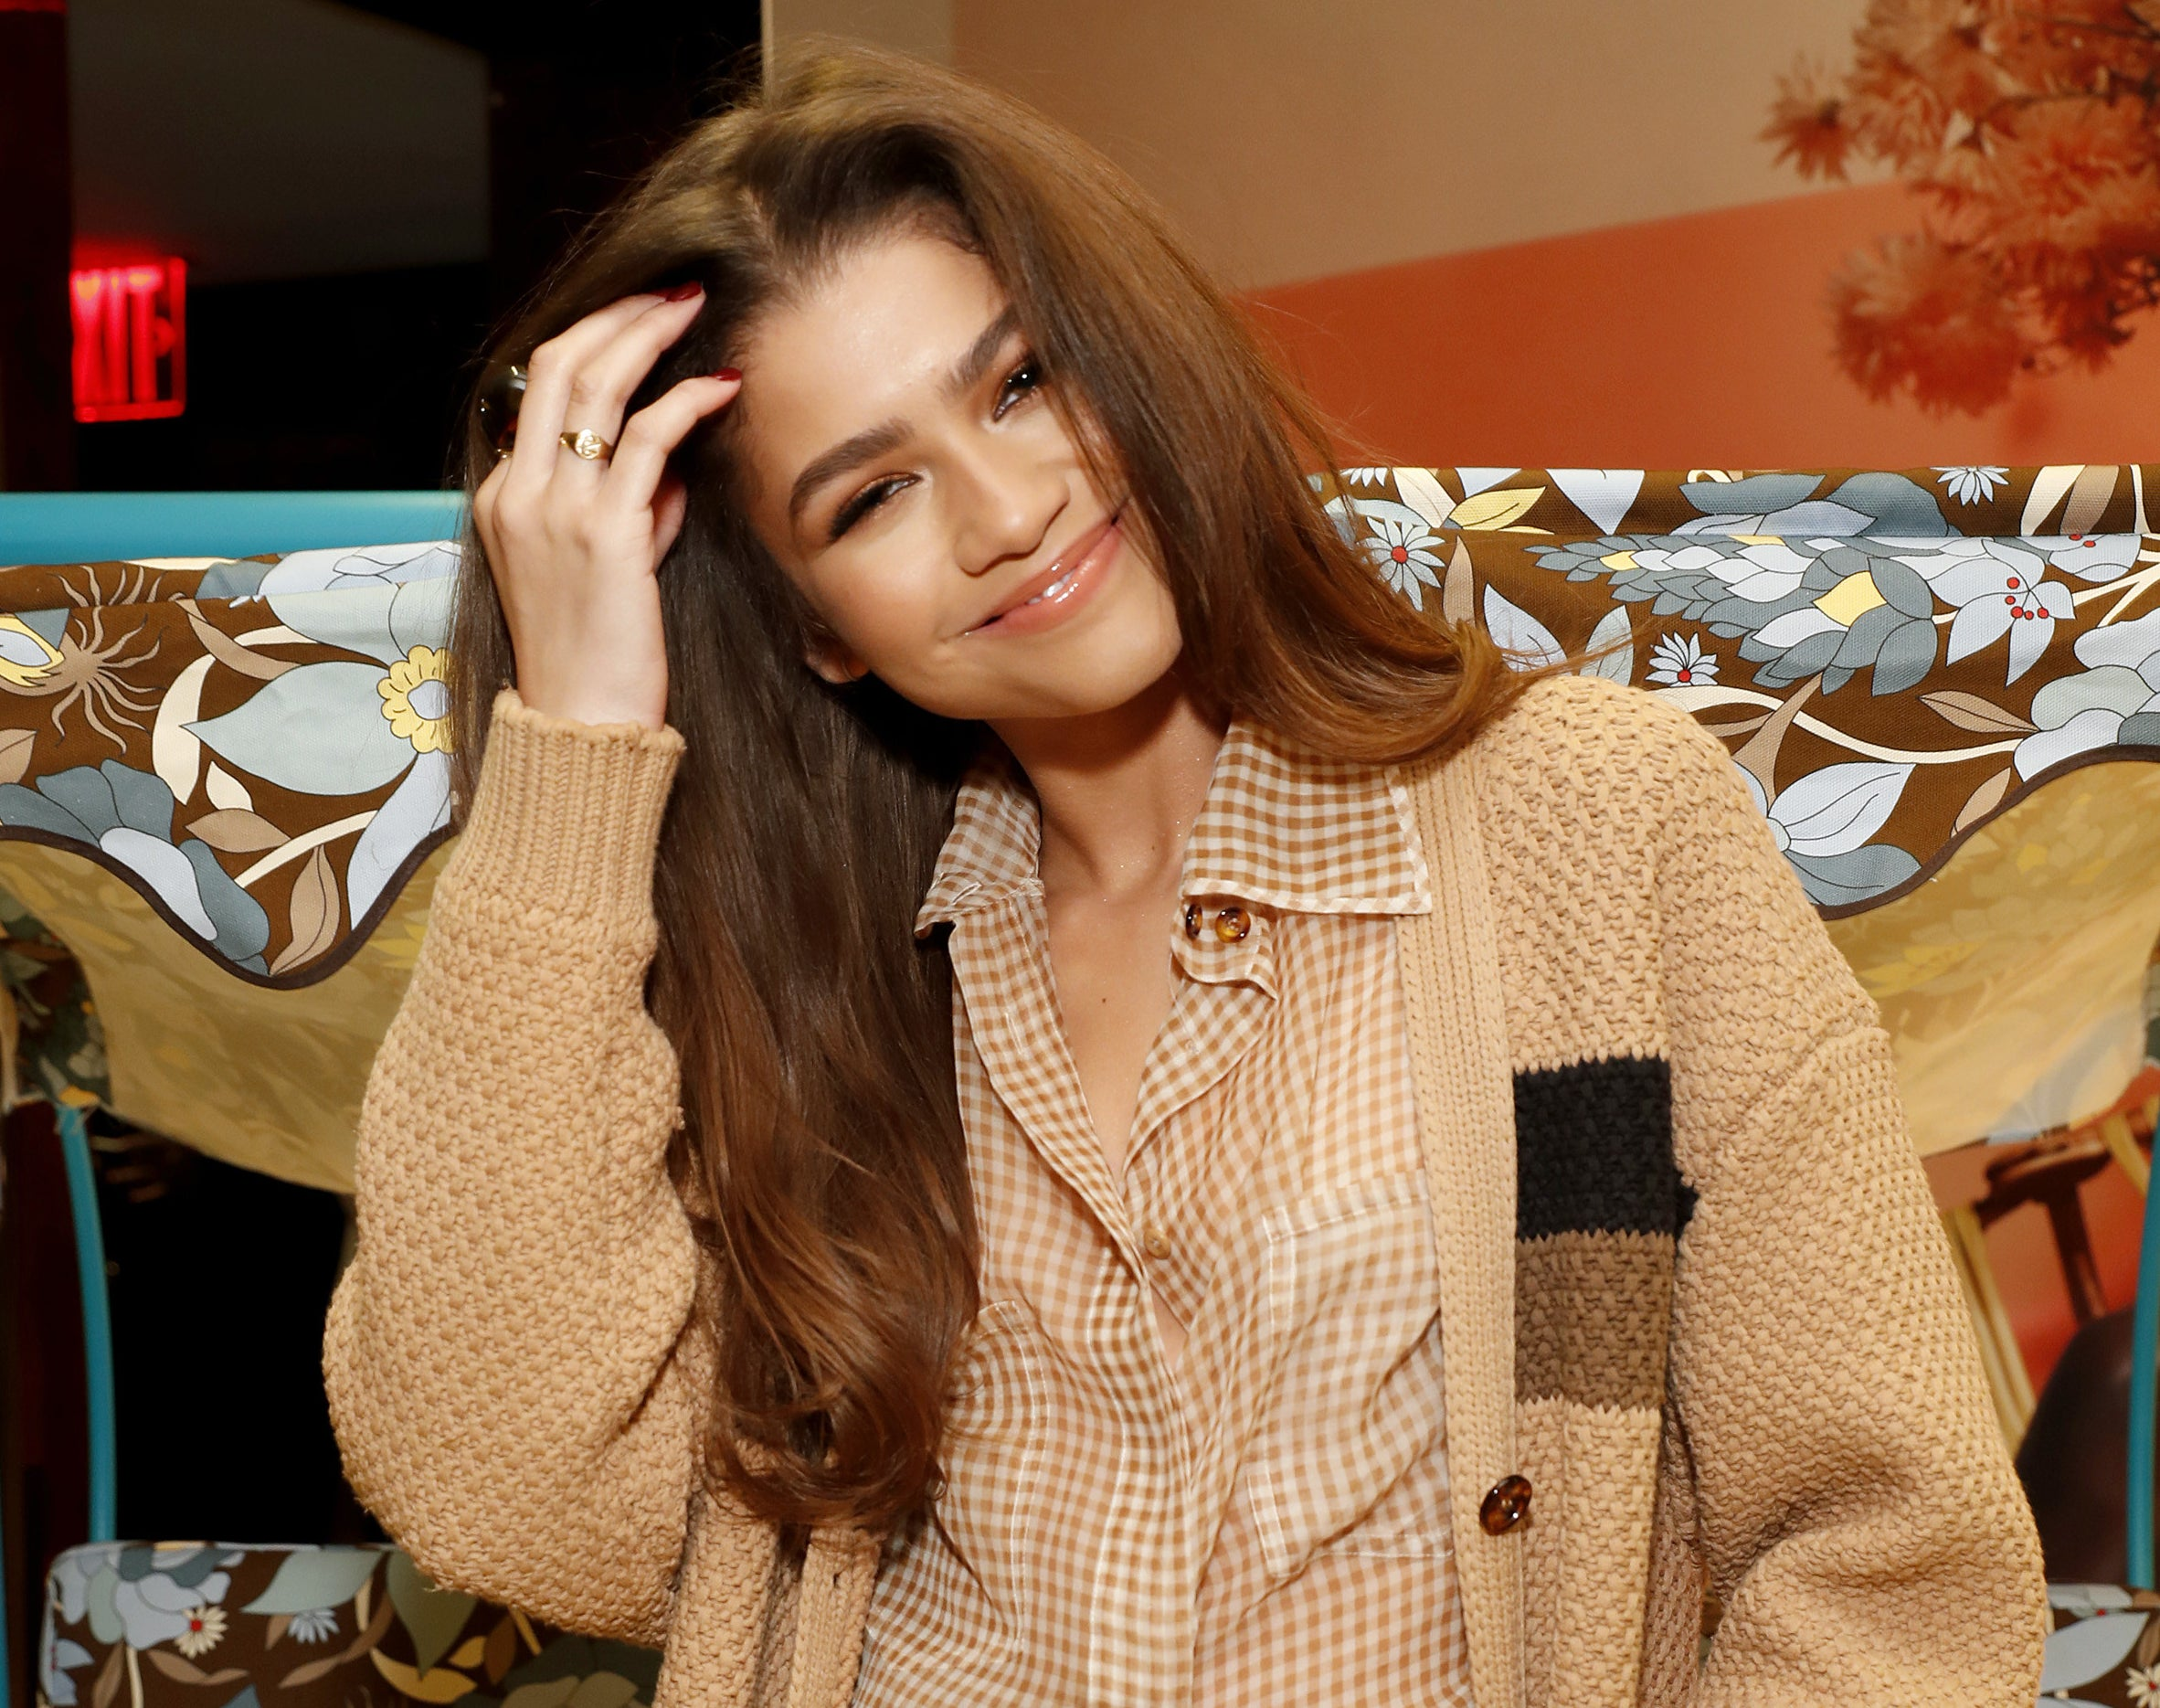 Zendaya smiles and poses while wearing a beige checked button down and beige cardigan